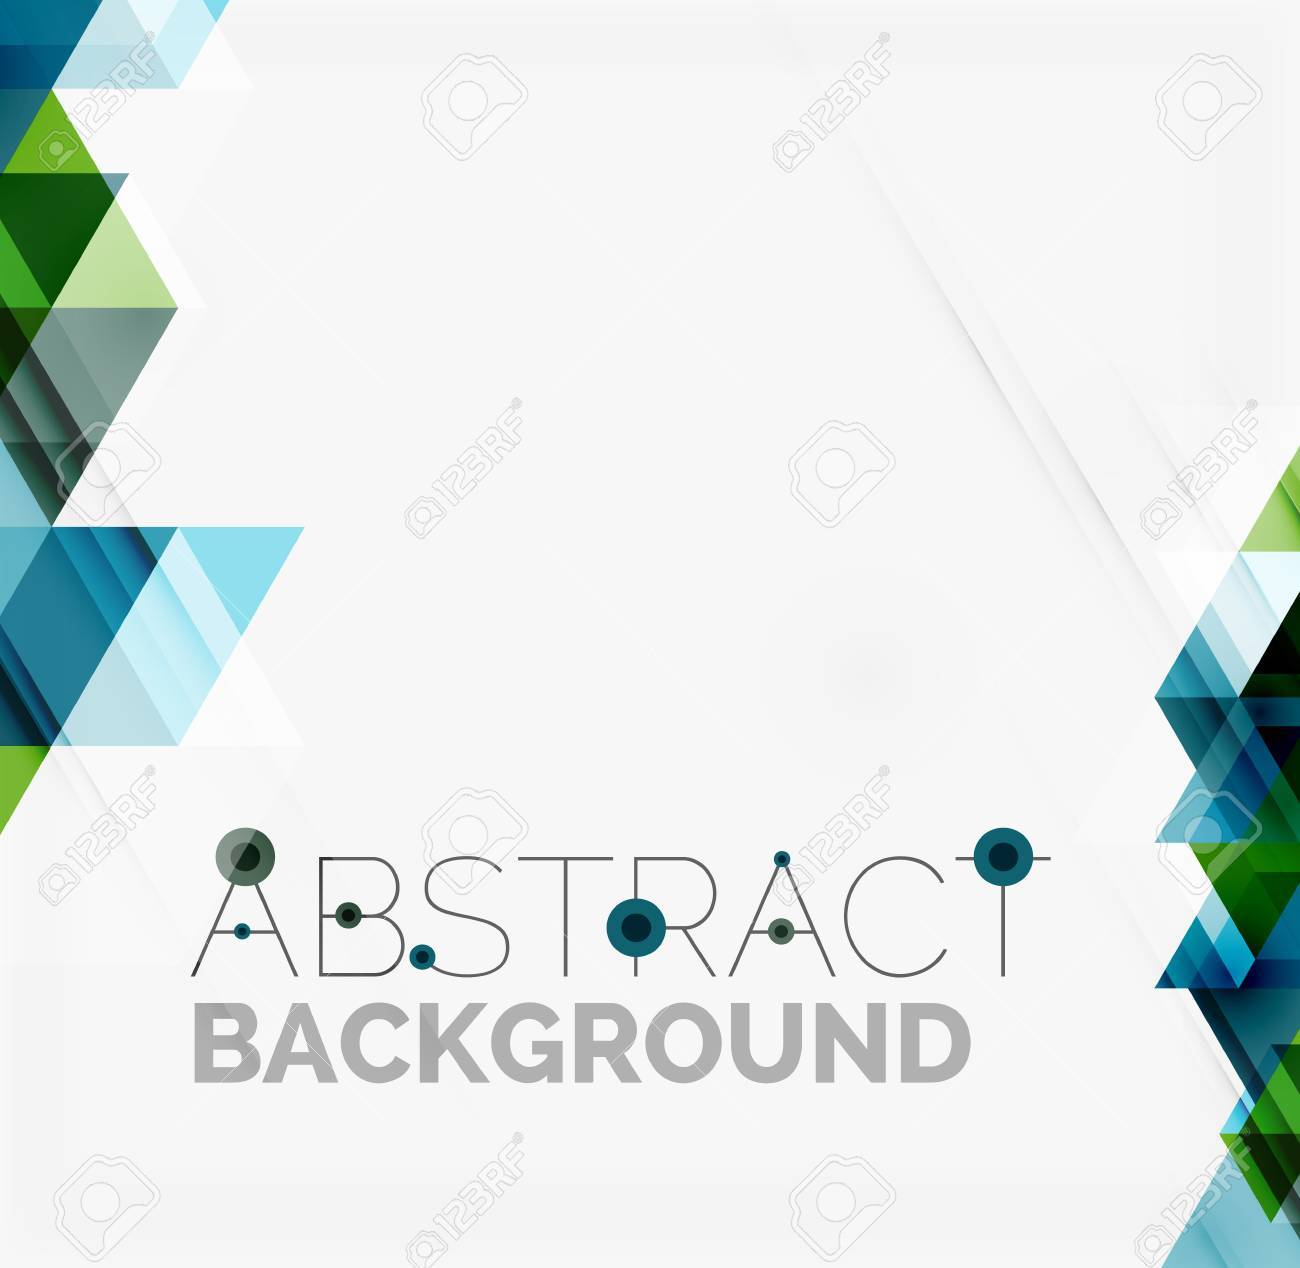 Abstract geometric background. Modern overlapping triangles - 40810894